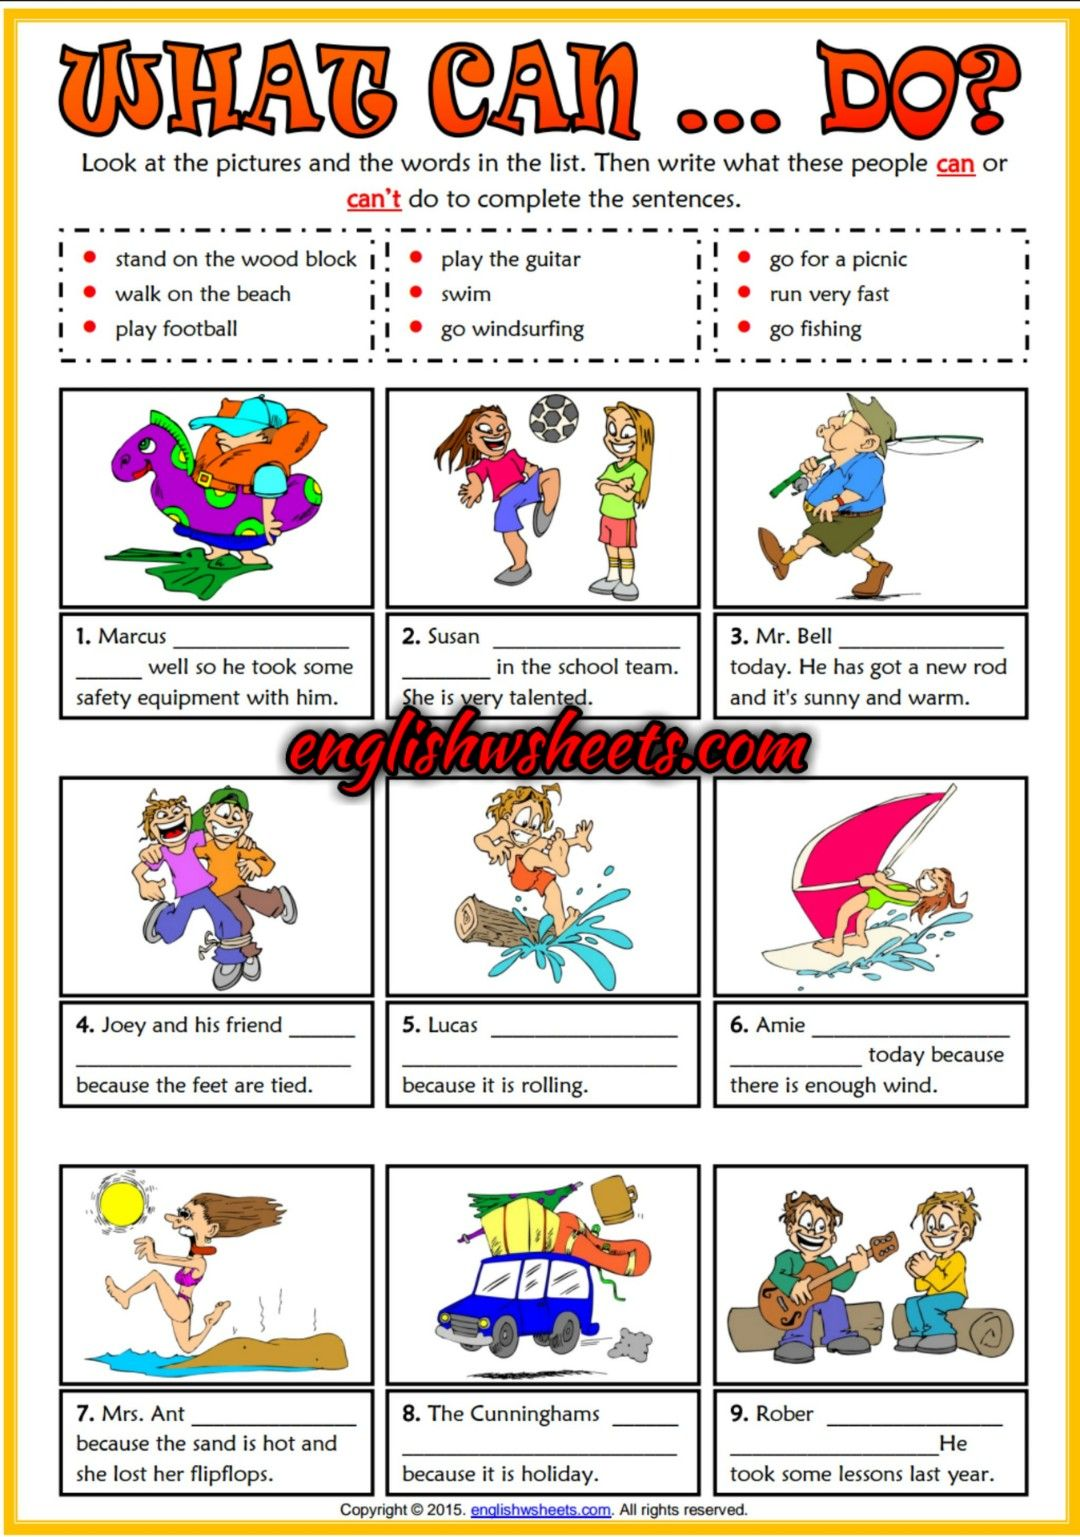 What Can They Do Esl Printable Grammar Exercise Worksheet